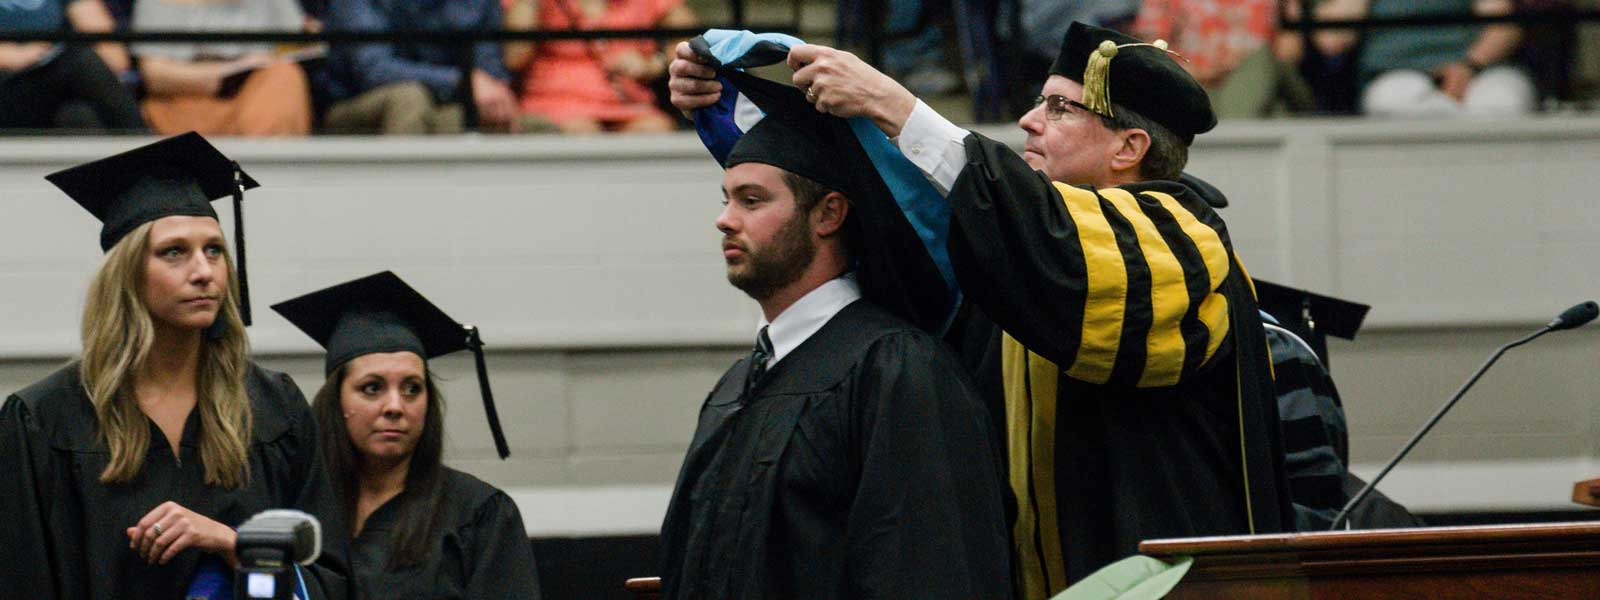 college dean put hoods around neck of graduate while other graduates watch and wait their turns